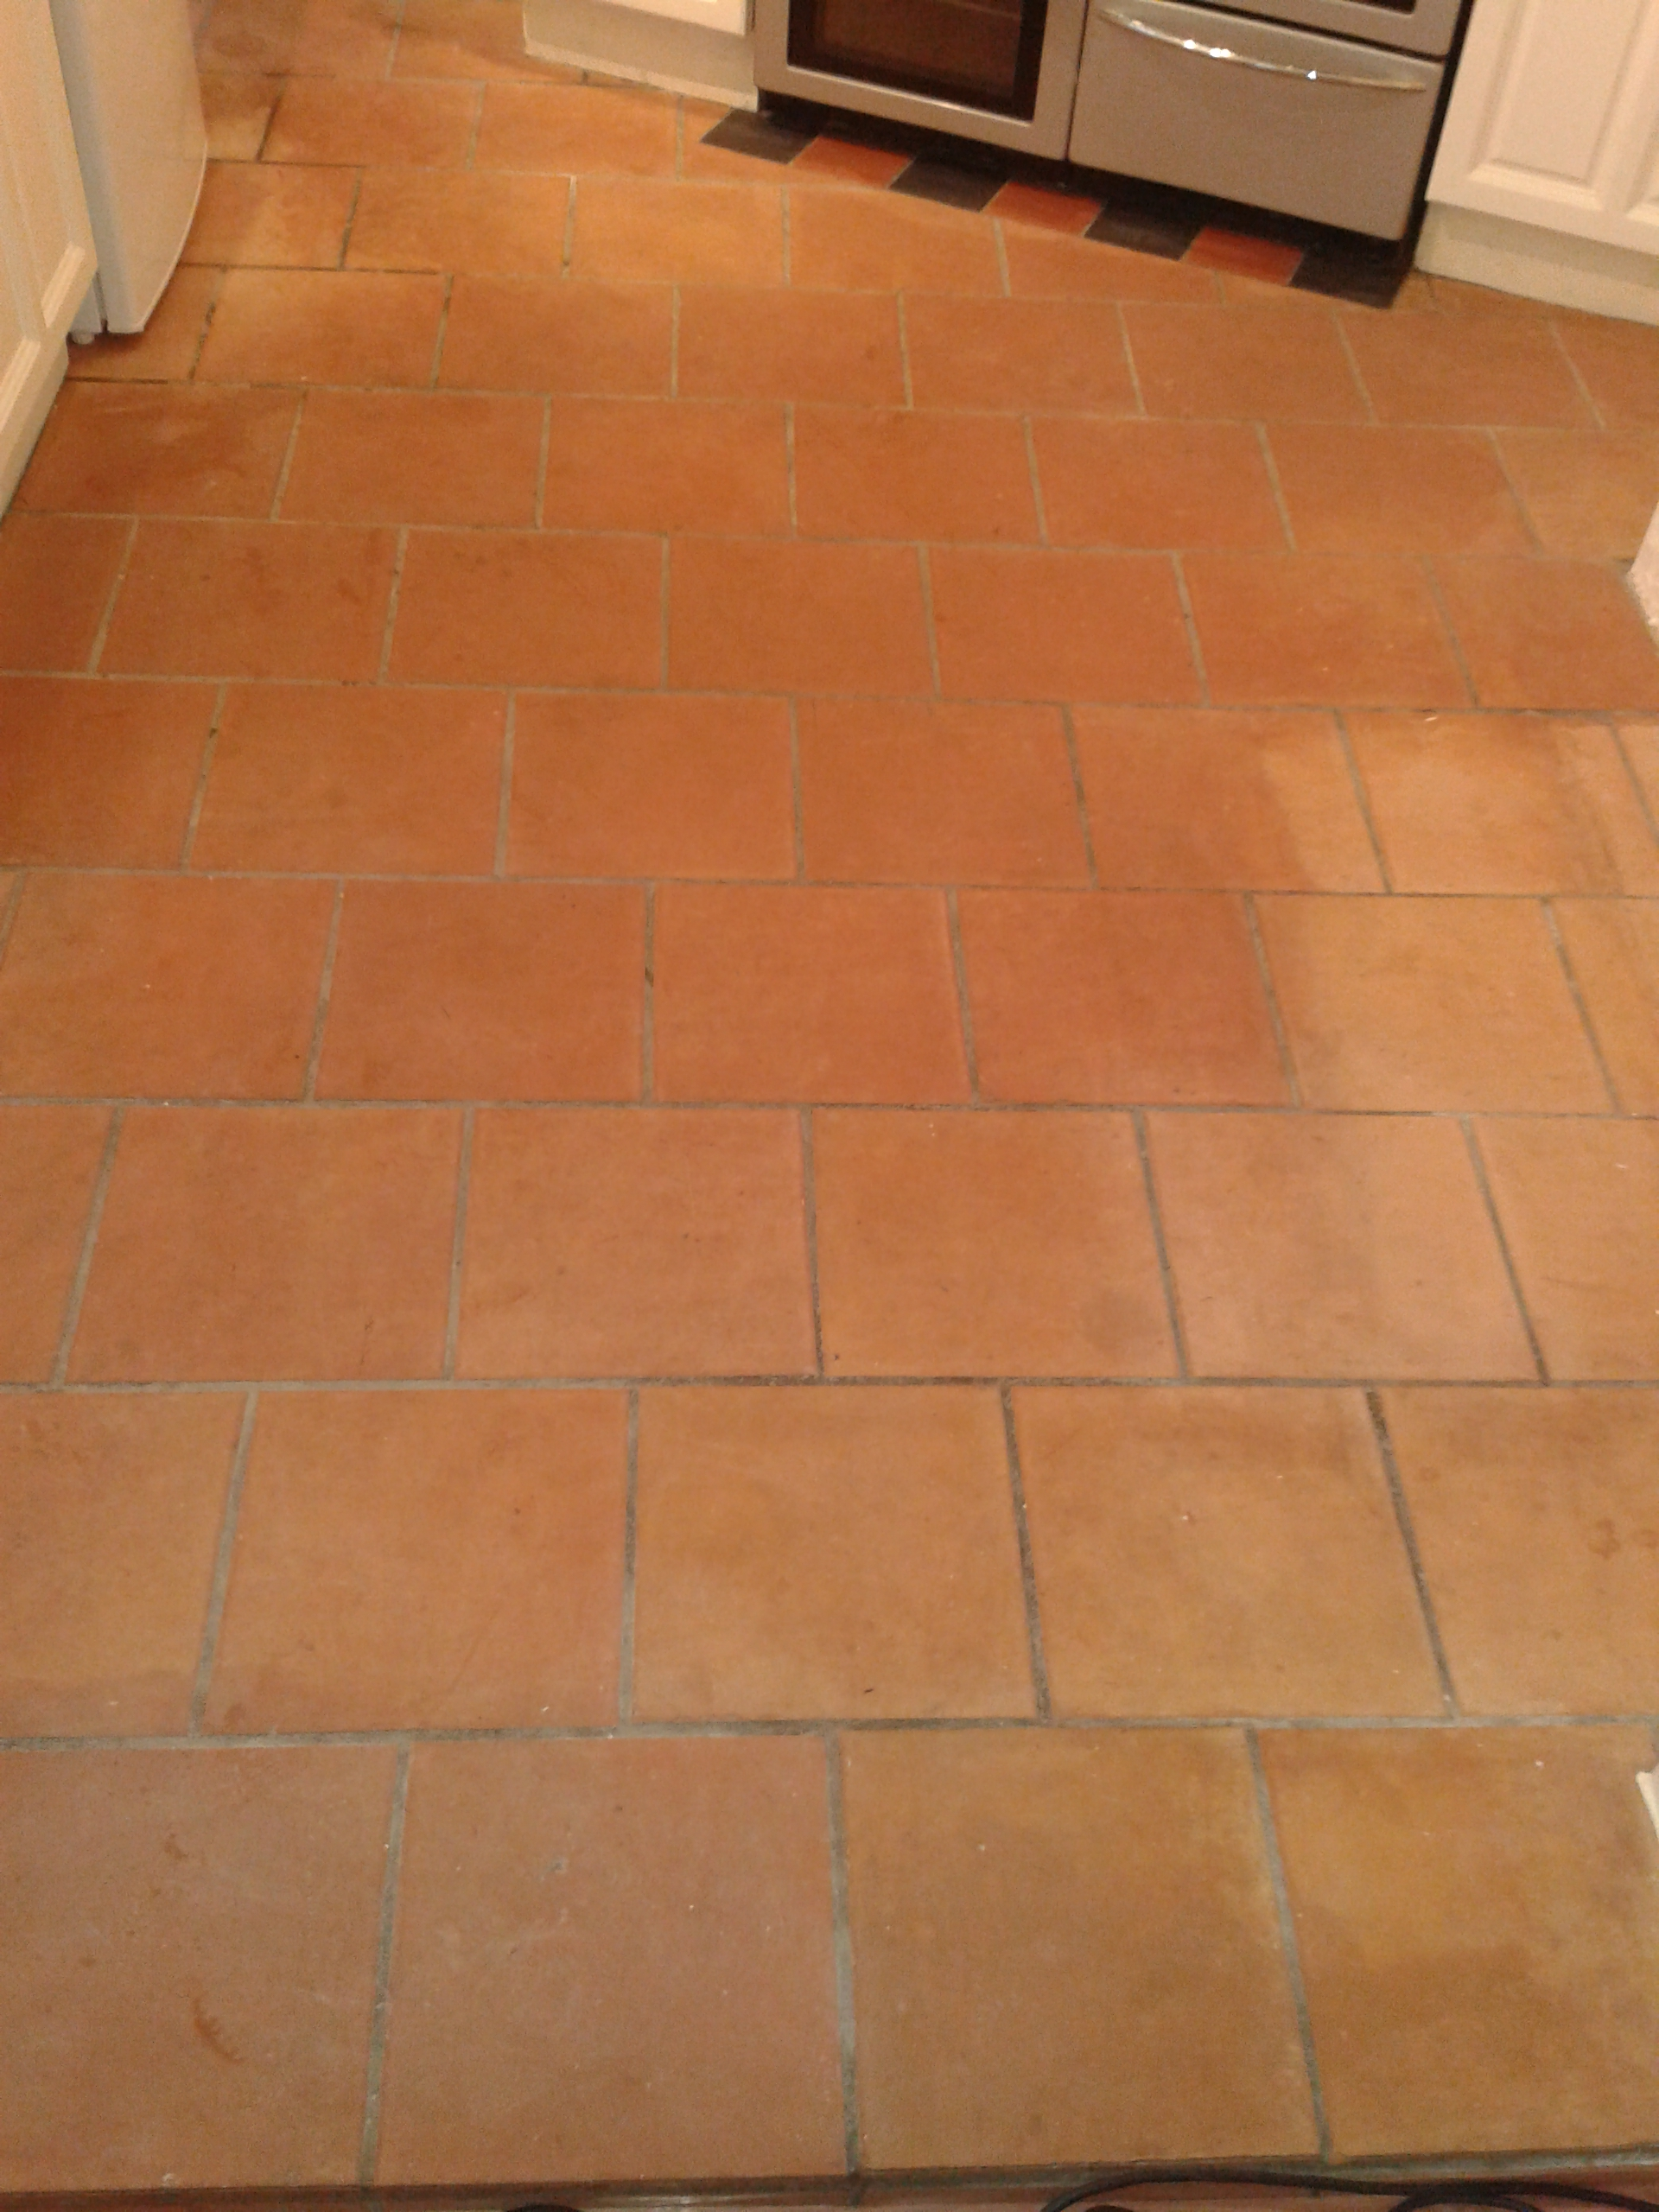 Terracotta Tiled Floor Before Cleaning in Shrewsbury